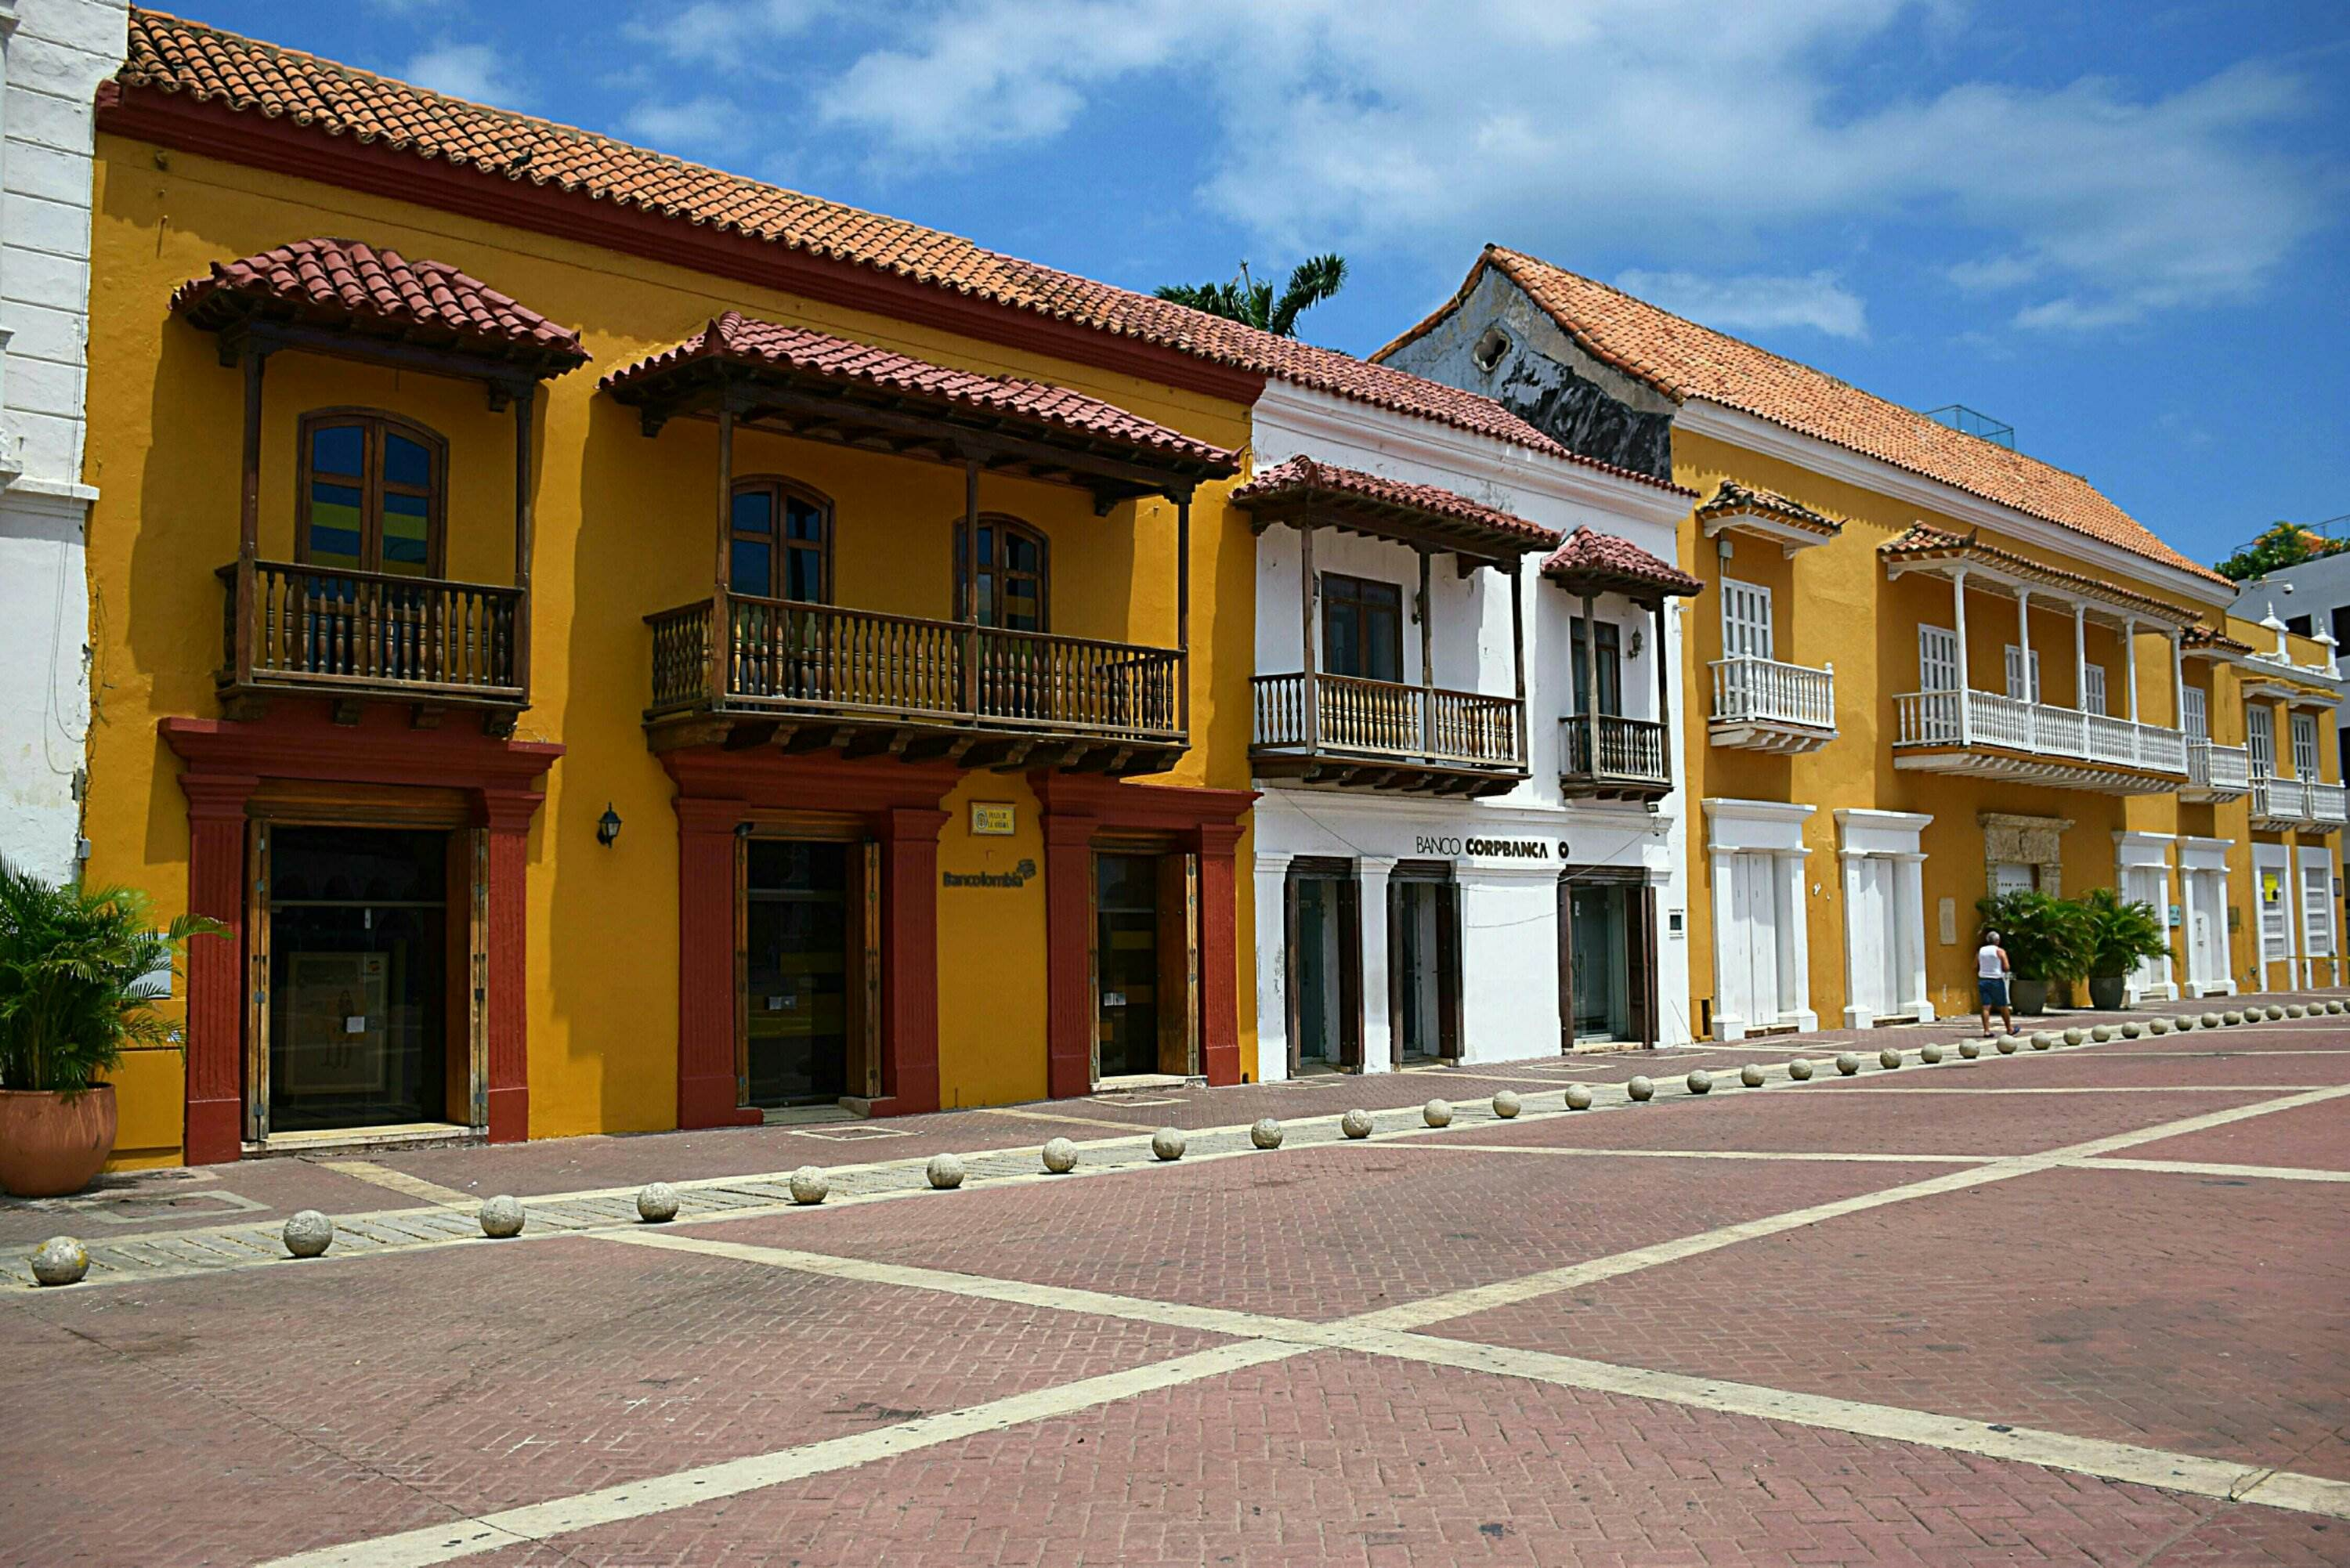 visiting cartagena is really great